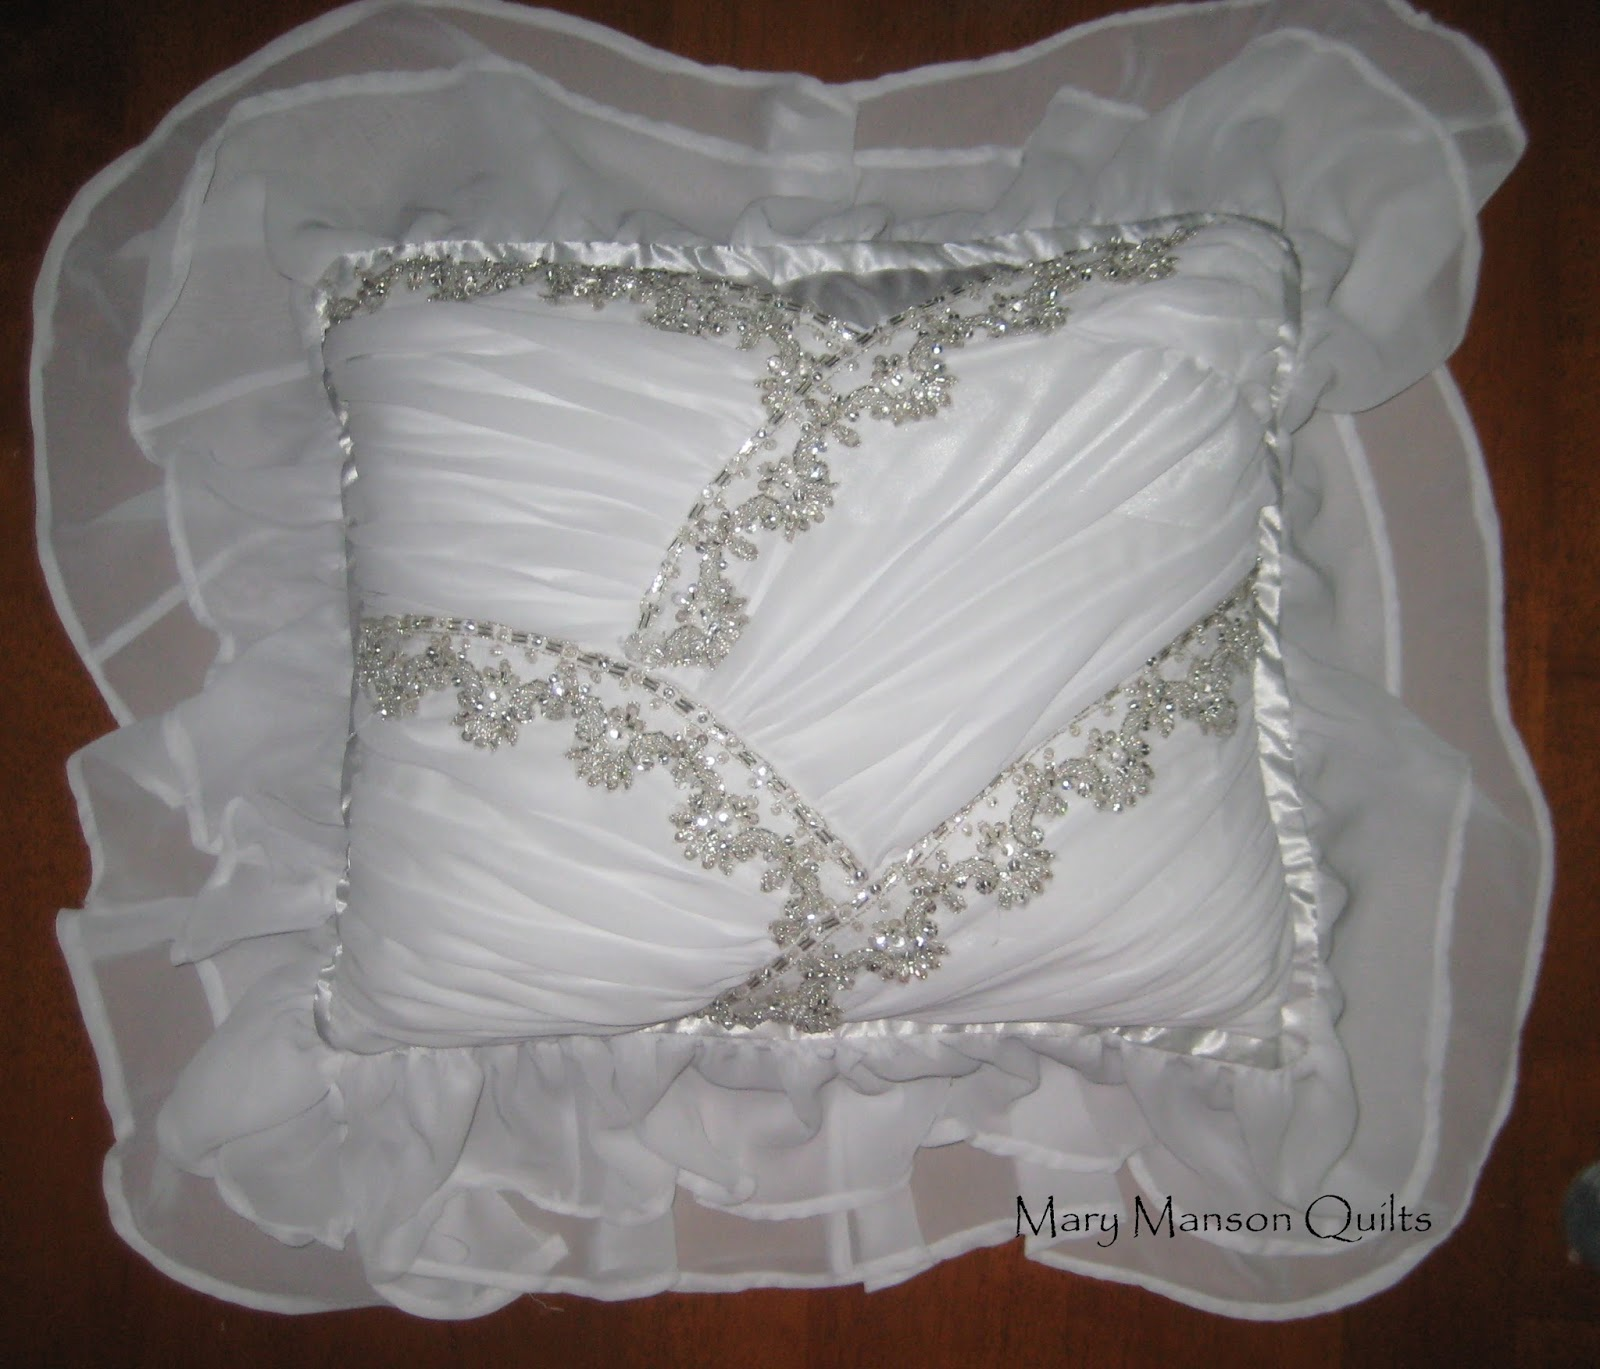 Mary Manson Quilts Wedding Dress Special Occasion